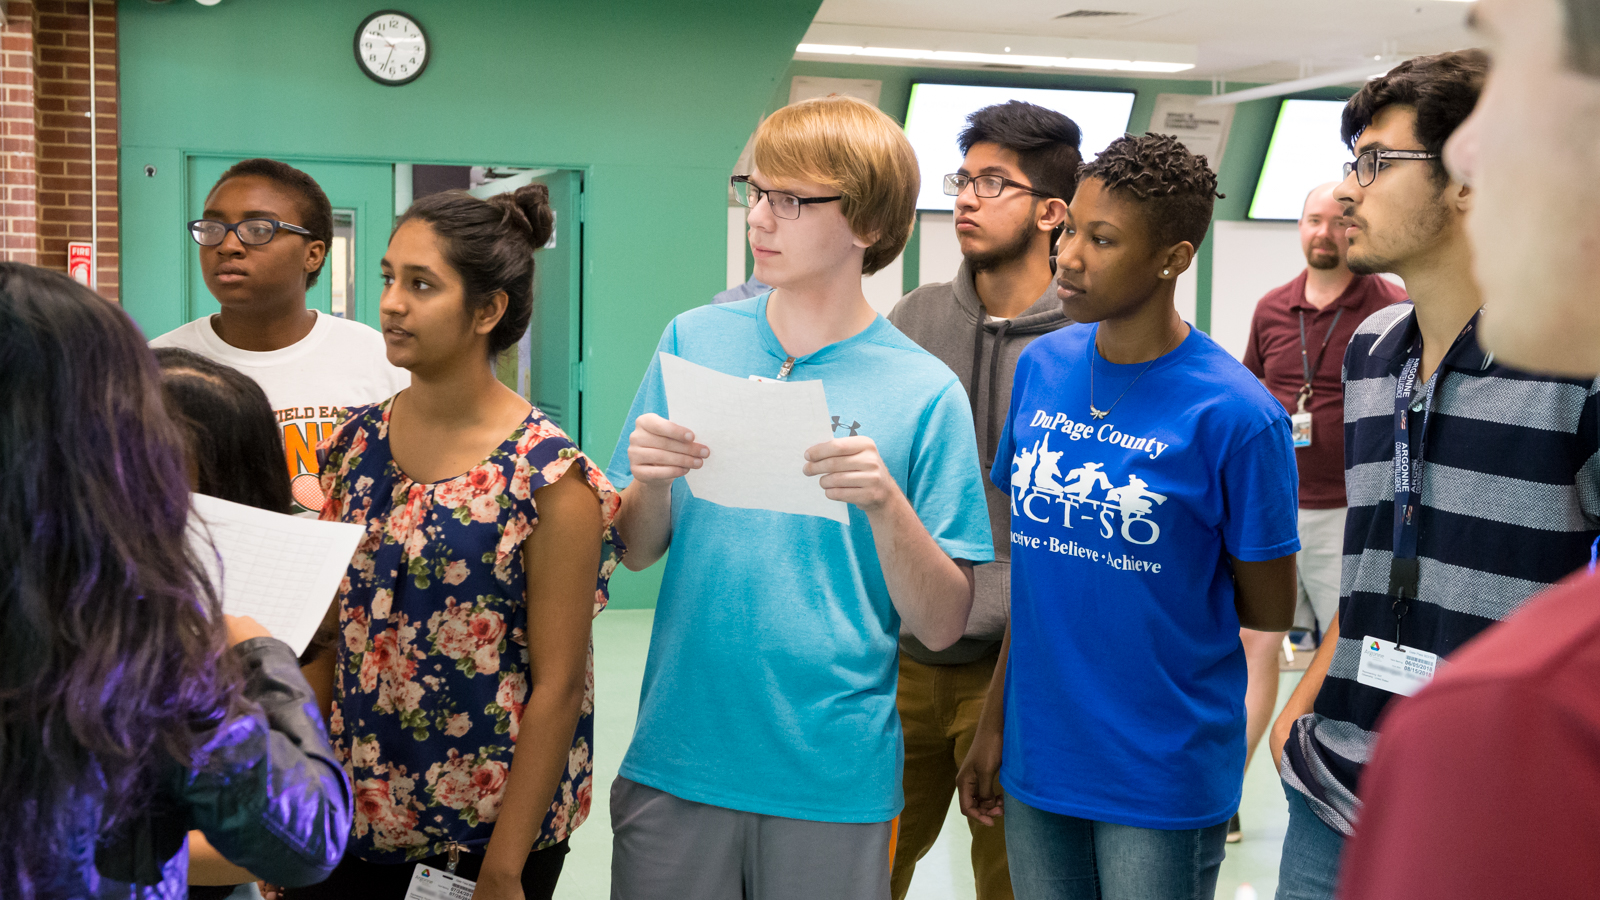 These students learned ways to interpret and visualize data at Argonne over the summer. (Image by Argonne National Laboratory.)